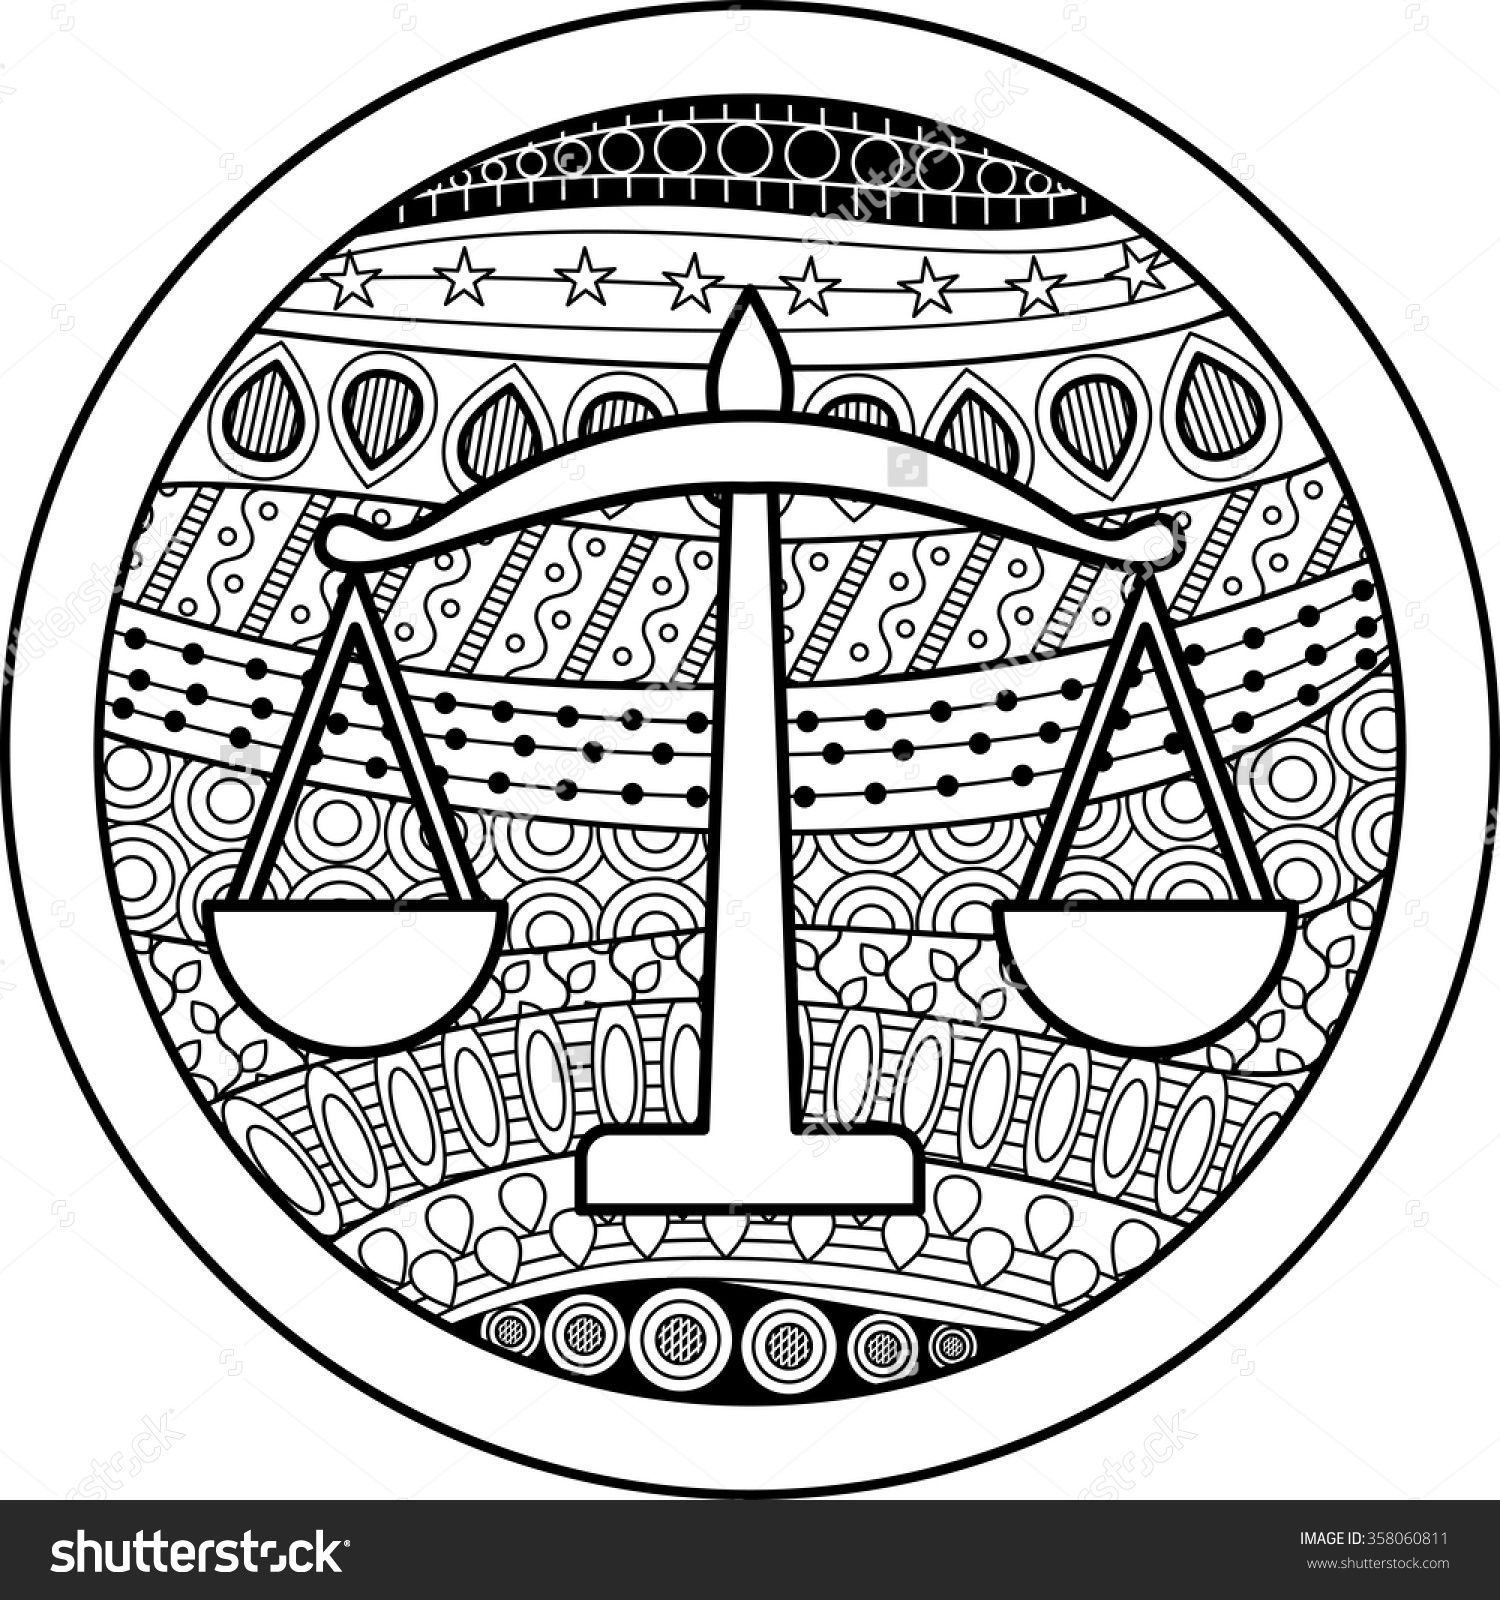 Coloring Page With Pattern And Zodiac Sign Libra In Zentangle Style